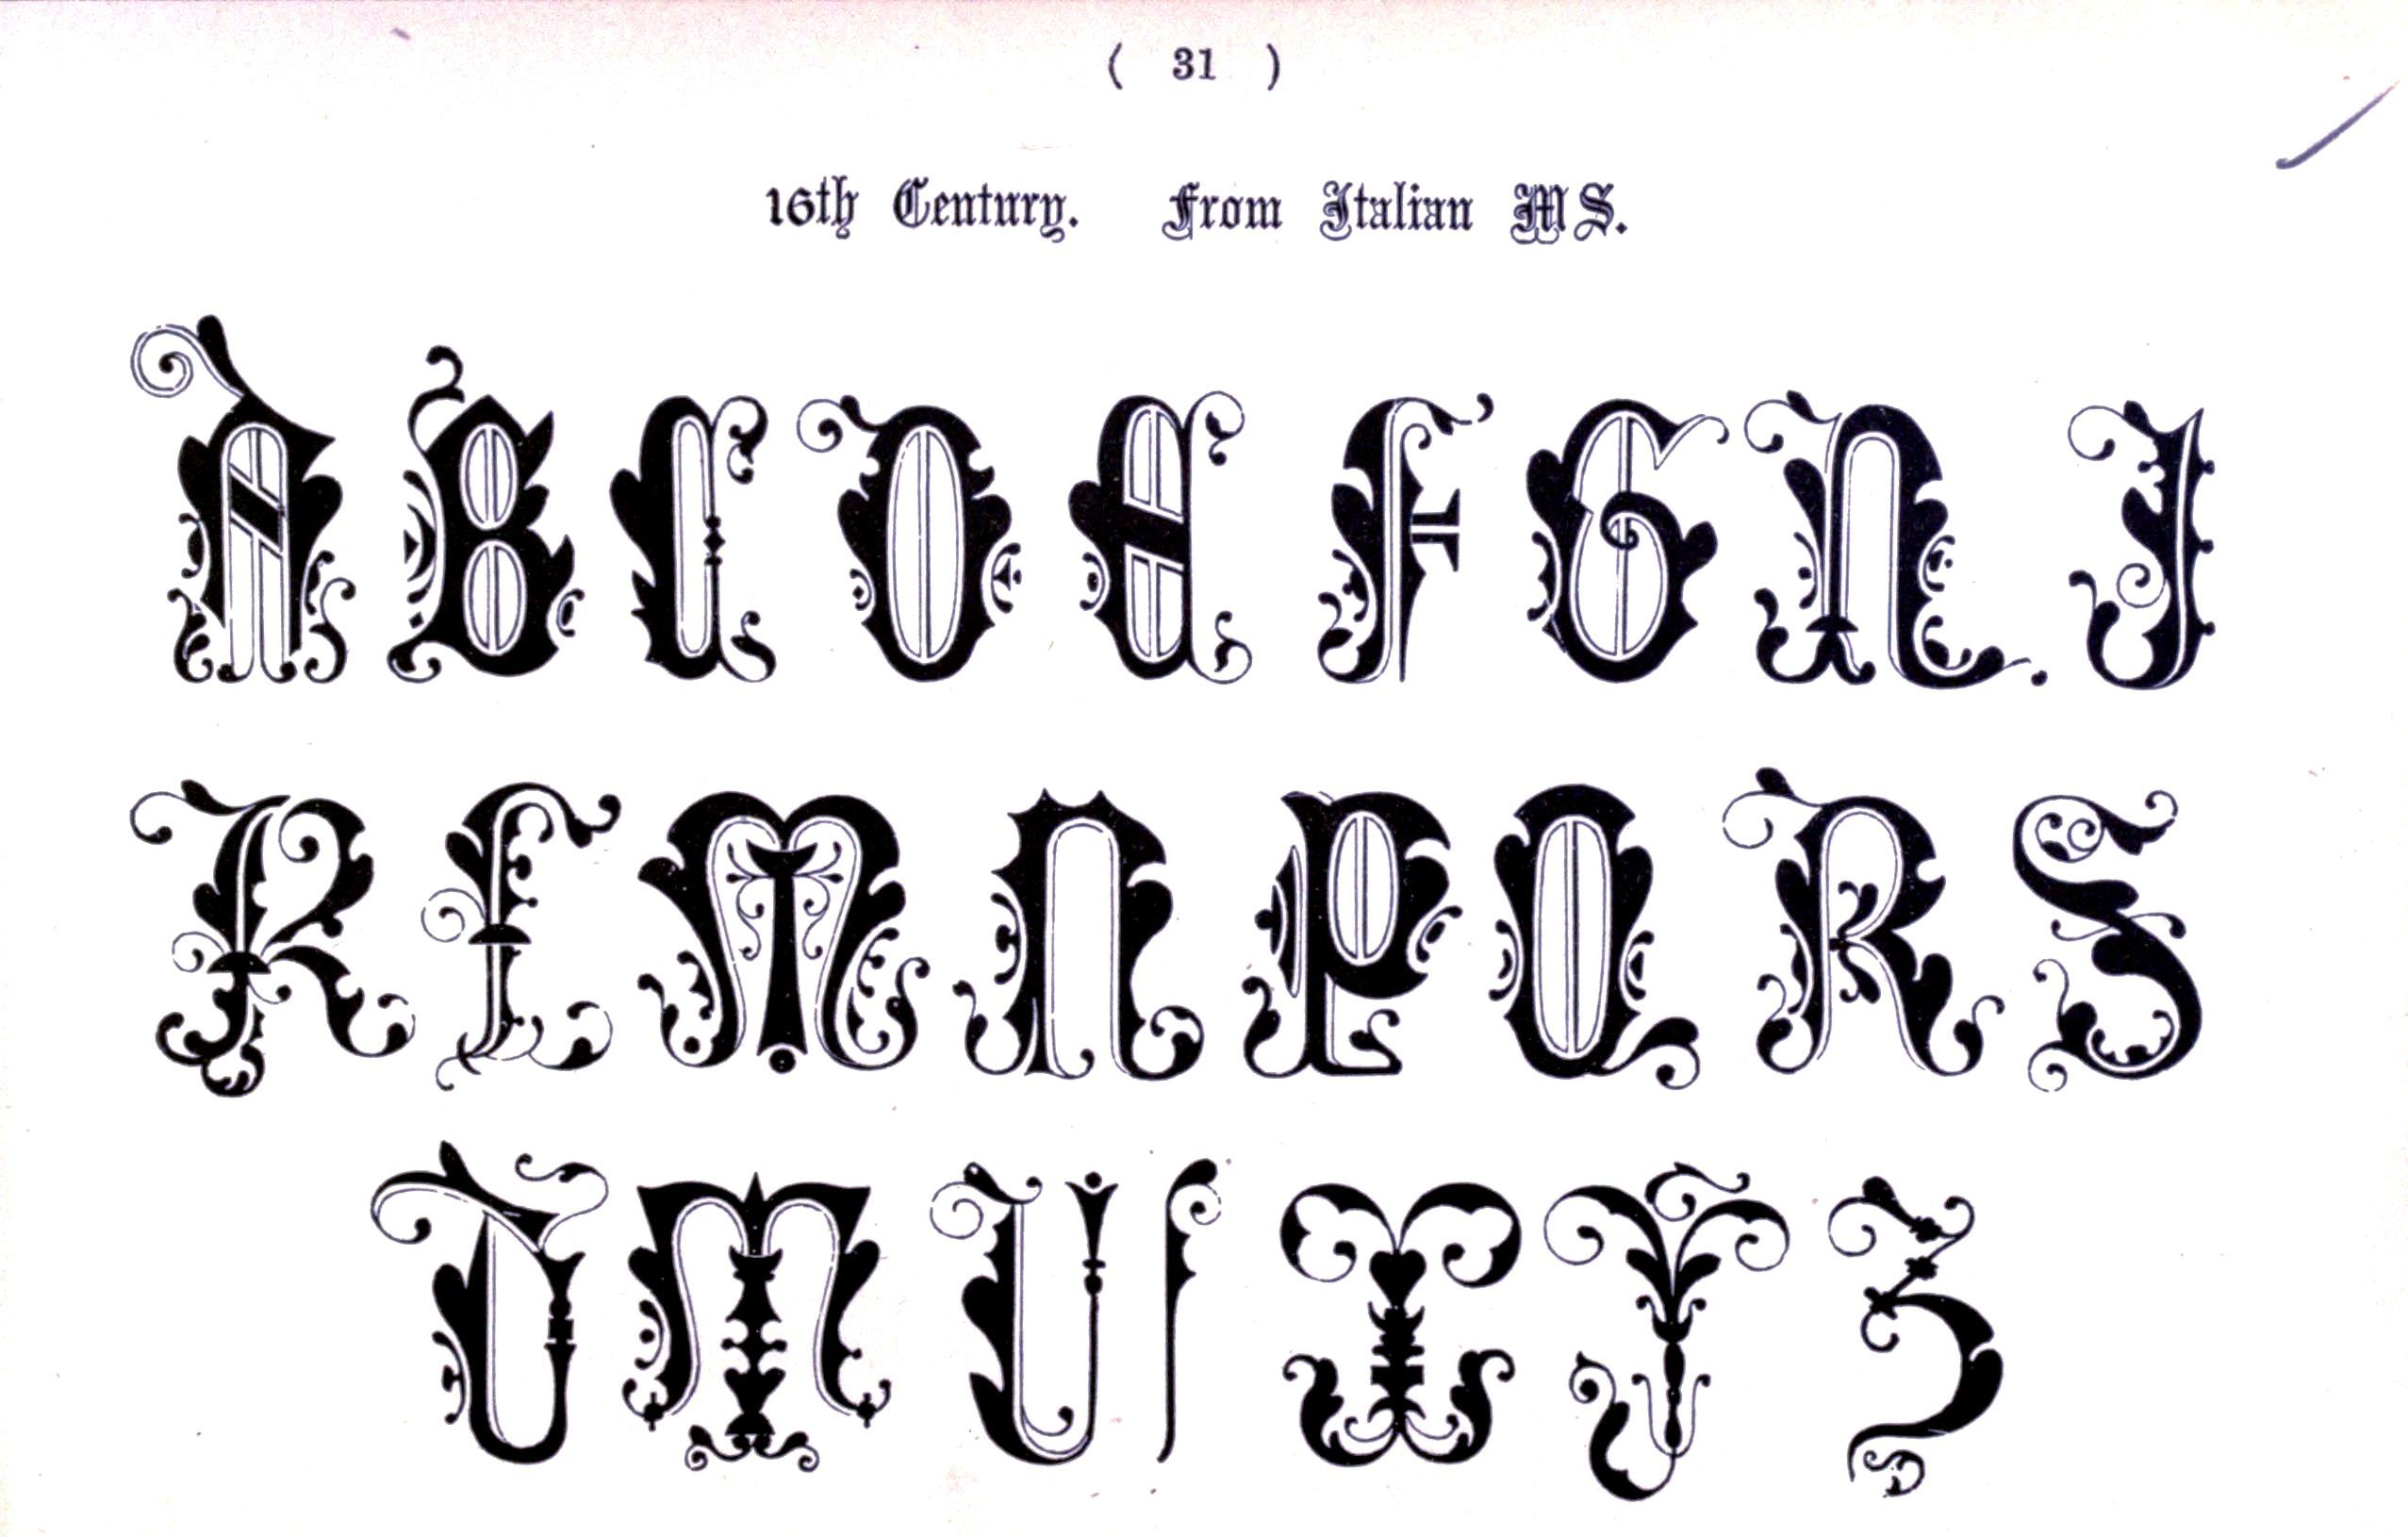 The book of ornamental alphabets, ancient and mediaeval